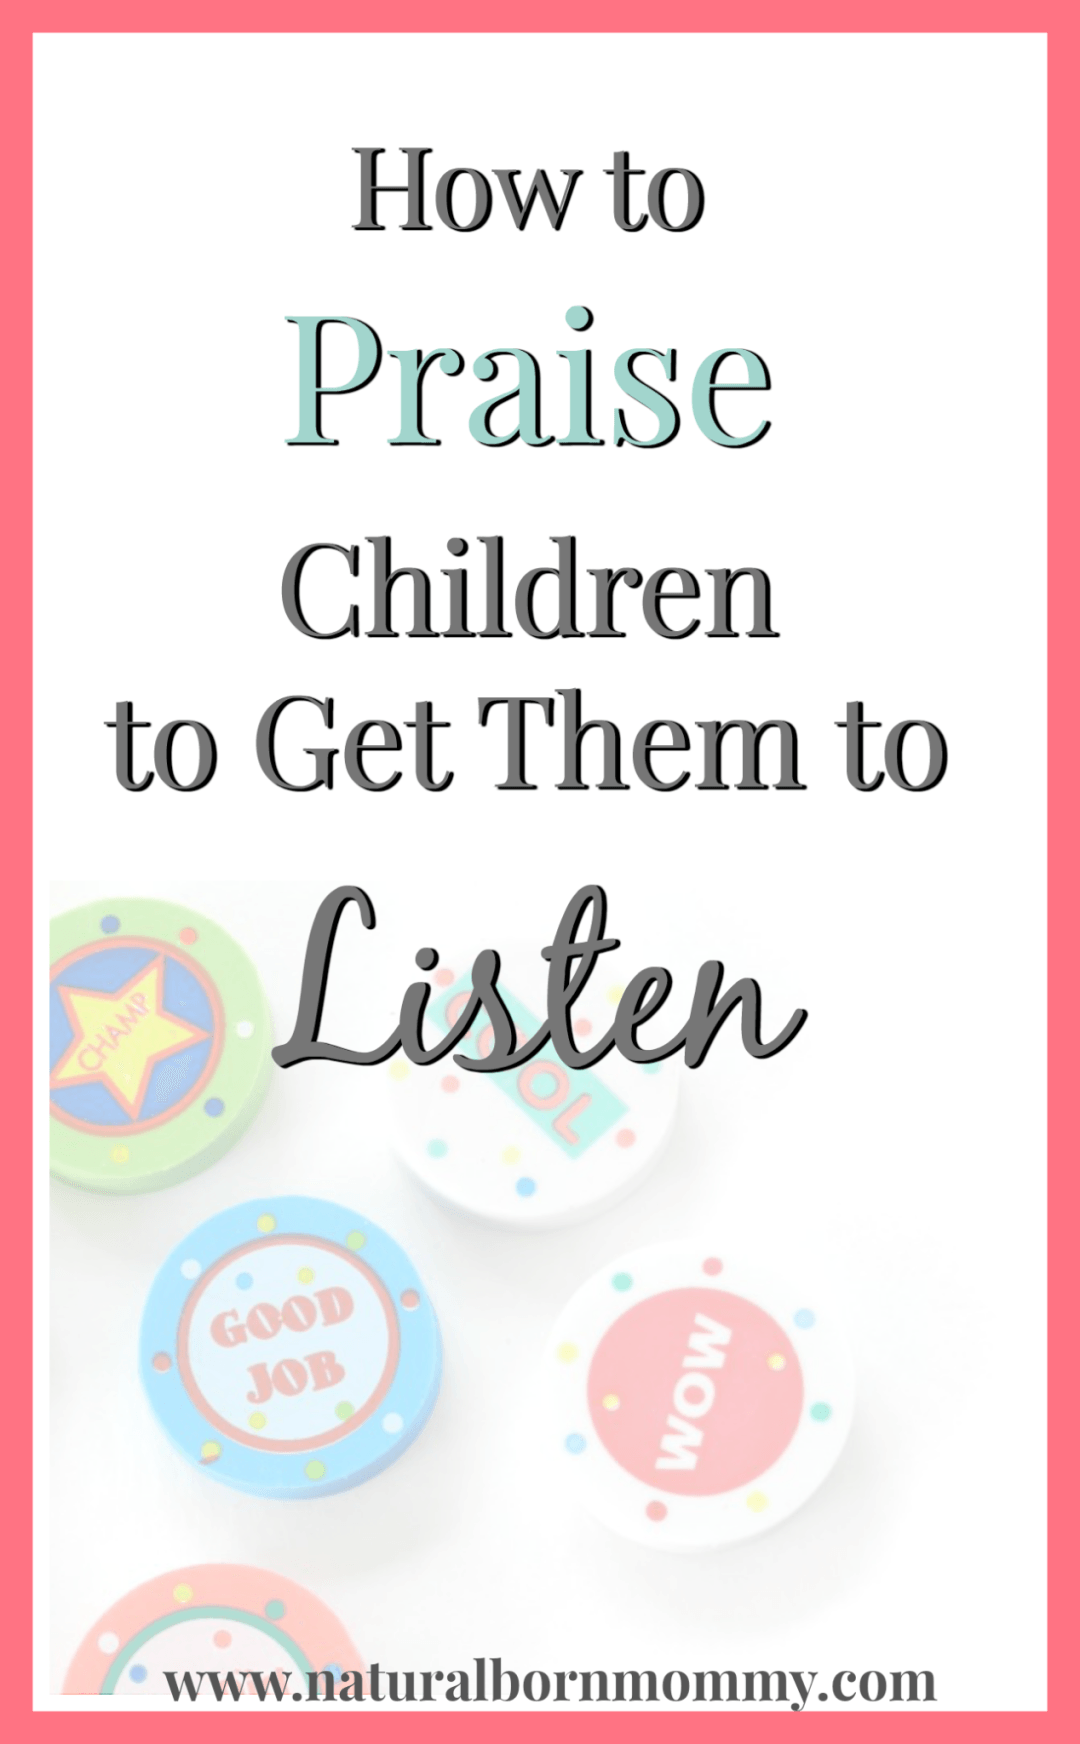 How to praise